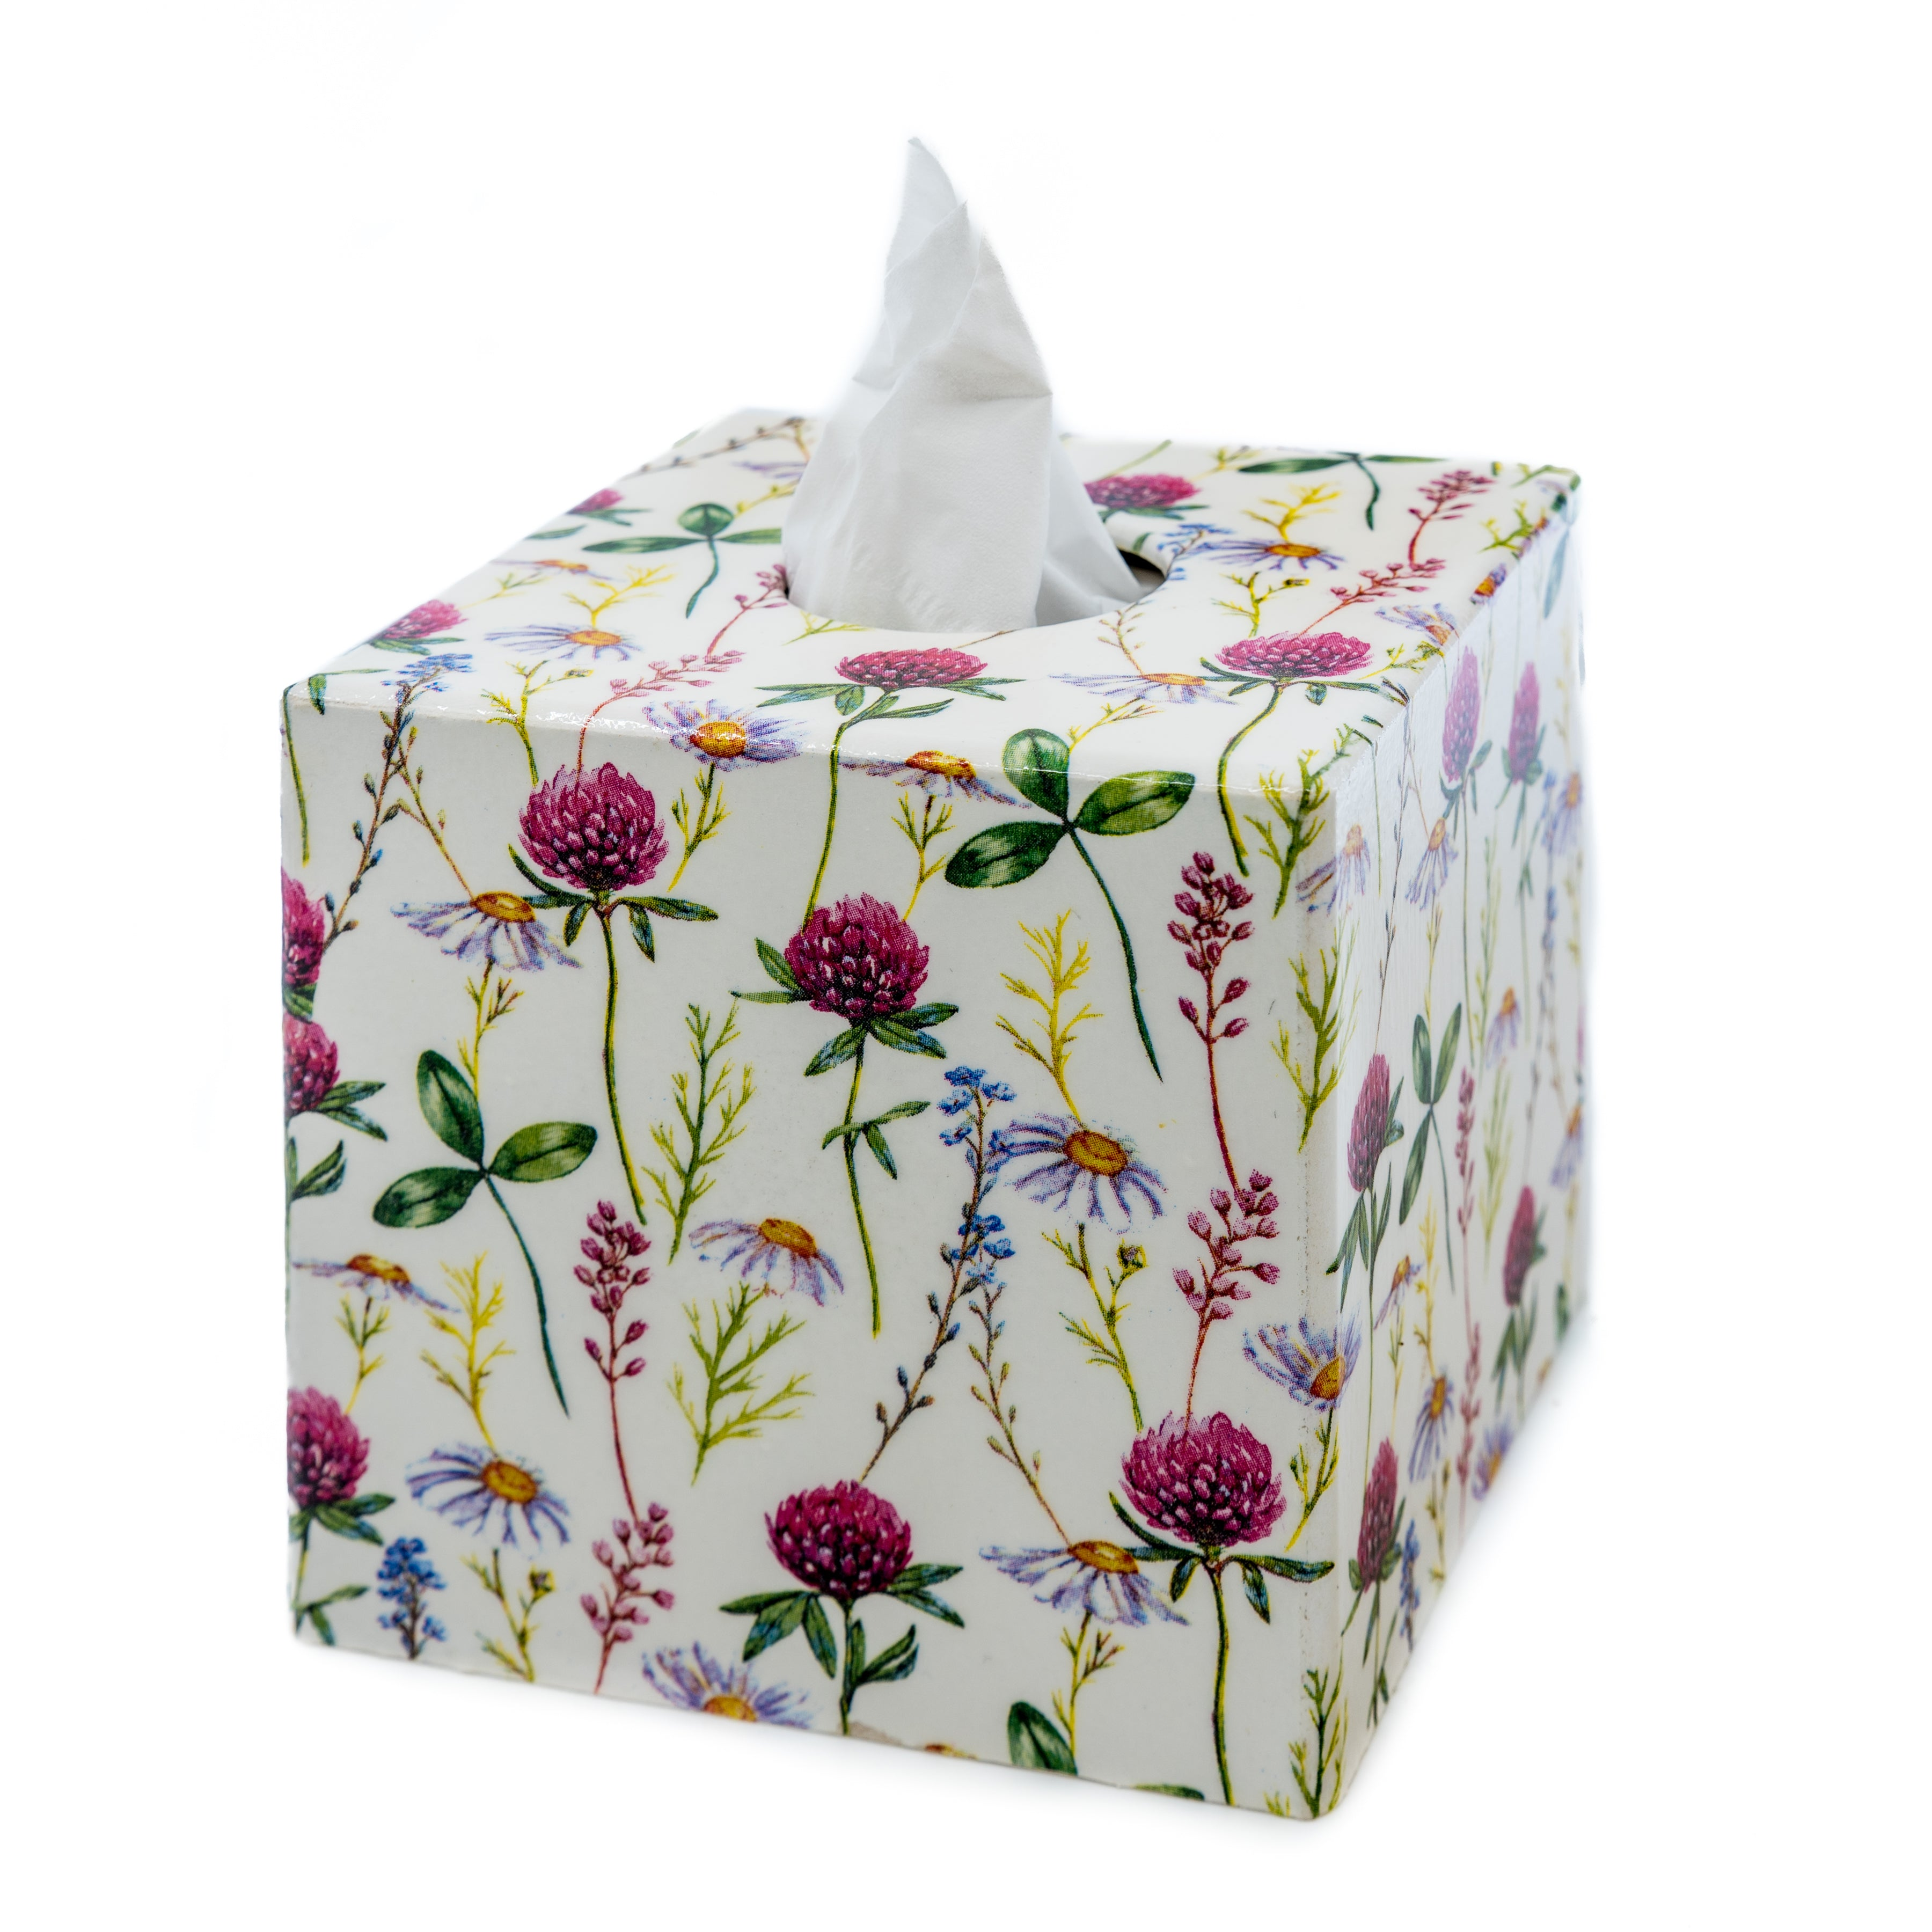 Pink English Clover Tissue Box Cover